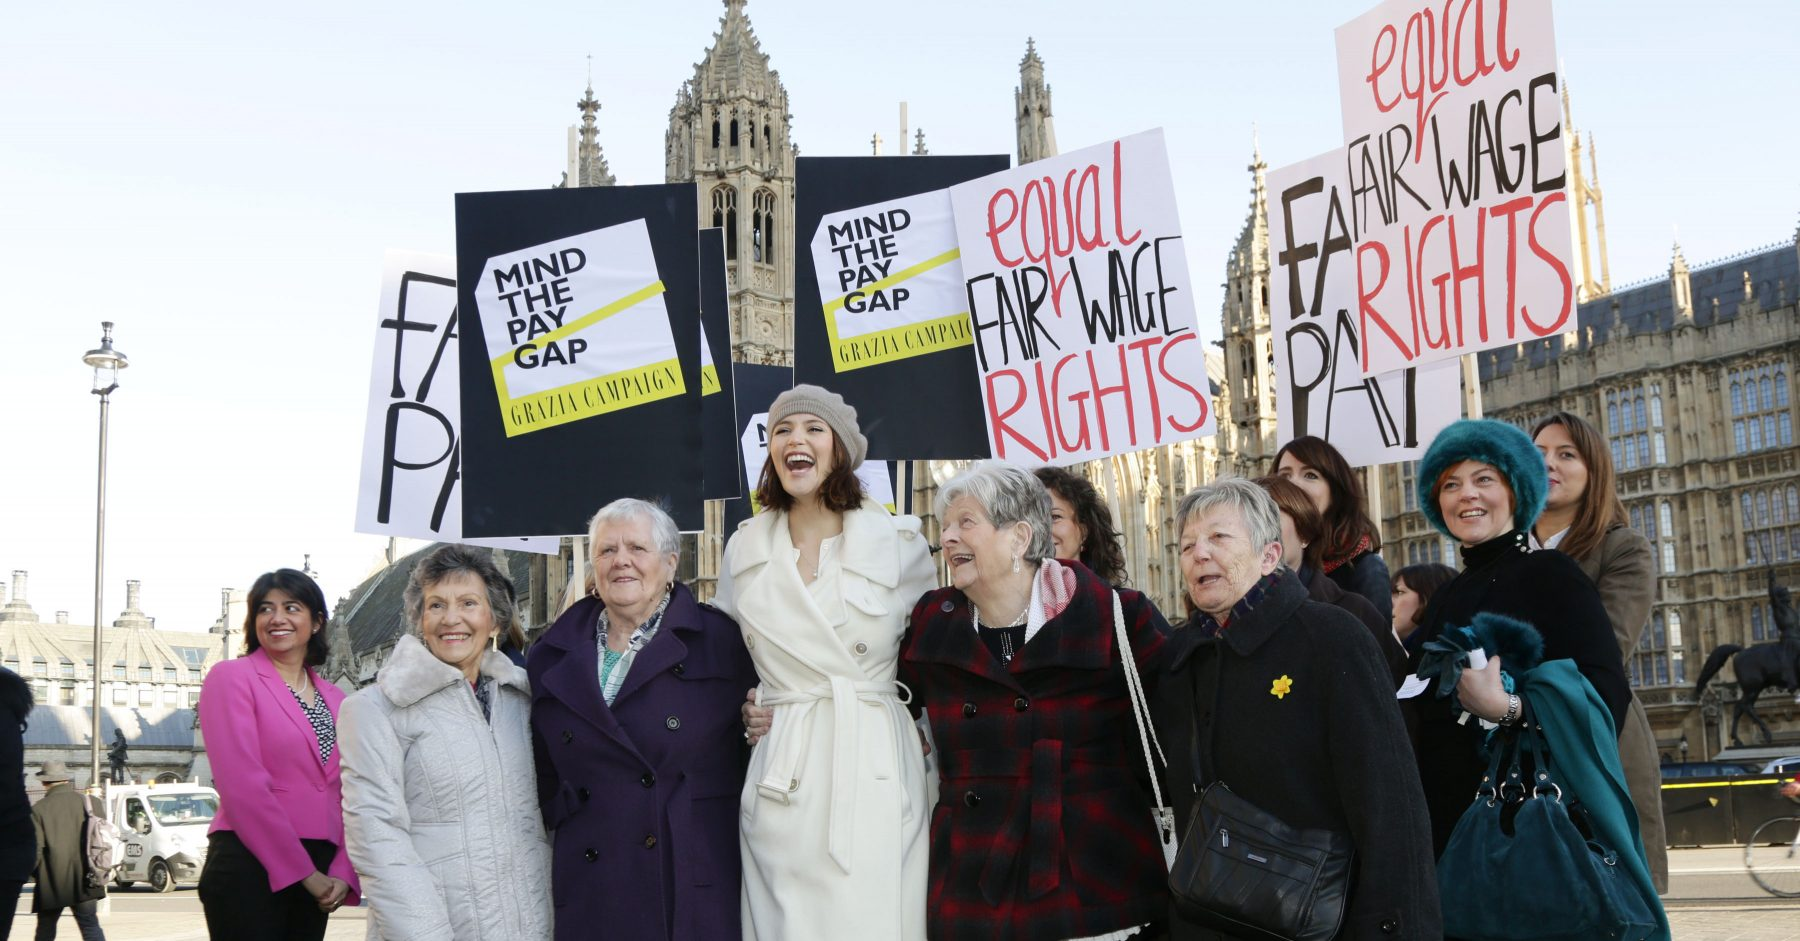 A gender pay gap demonstration in London